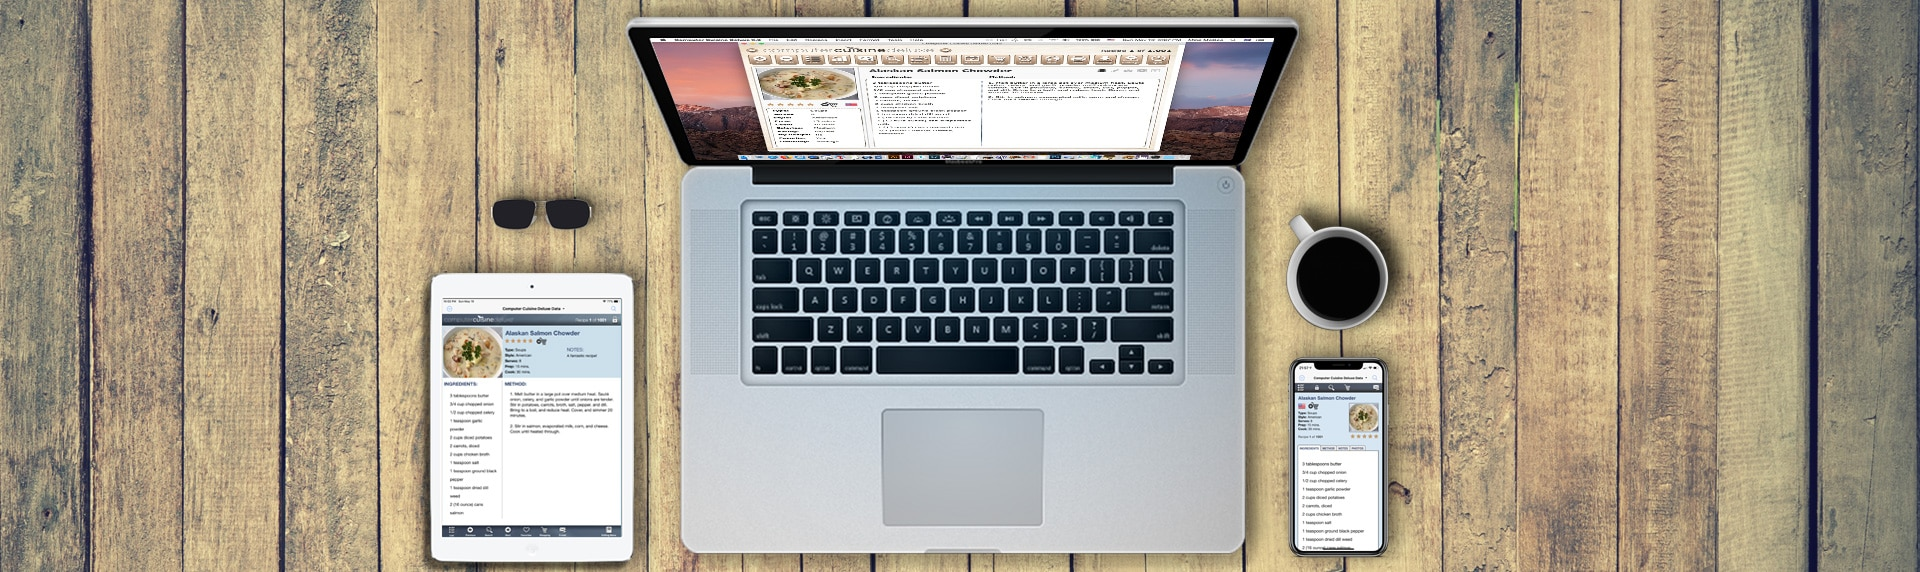 computer cuisine laptop mac recipe software version 9 MacBook Pro macOS MacBook Pro iPhone iPad